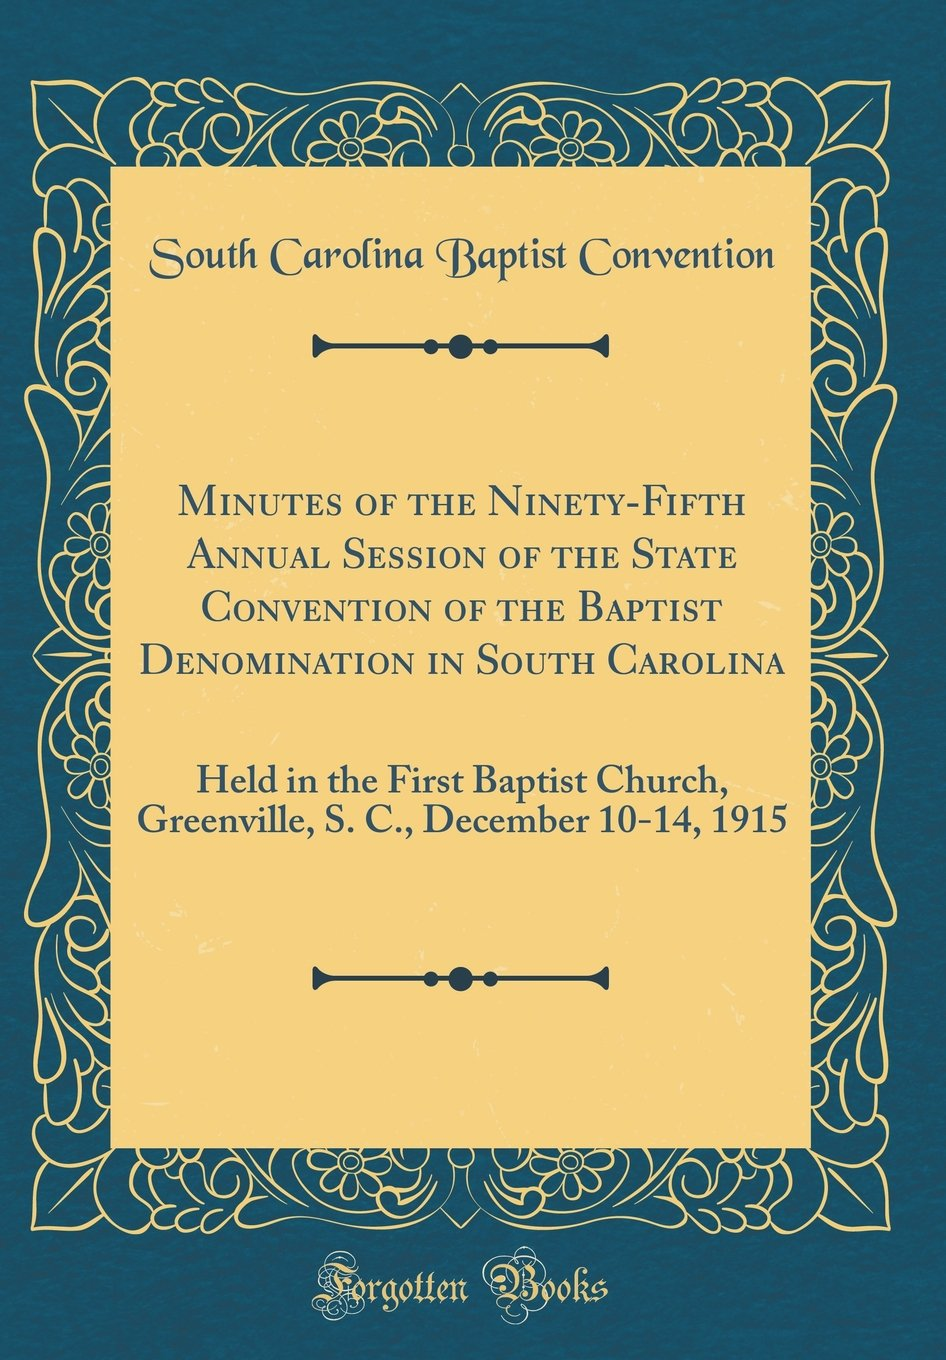 Download Minutes of the Ninety-Fifth Annual Session of the State Convention of the Baptist Denomination in South Carolina: Held in the First Baptist Church, ... S. C., December 10-14, 1915 (Classic Reprint) pdf epub